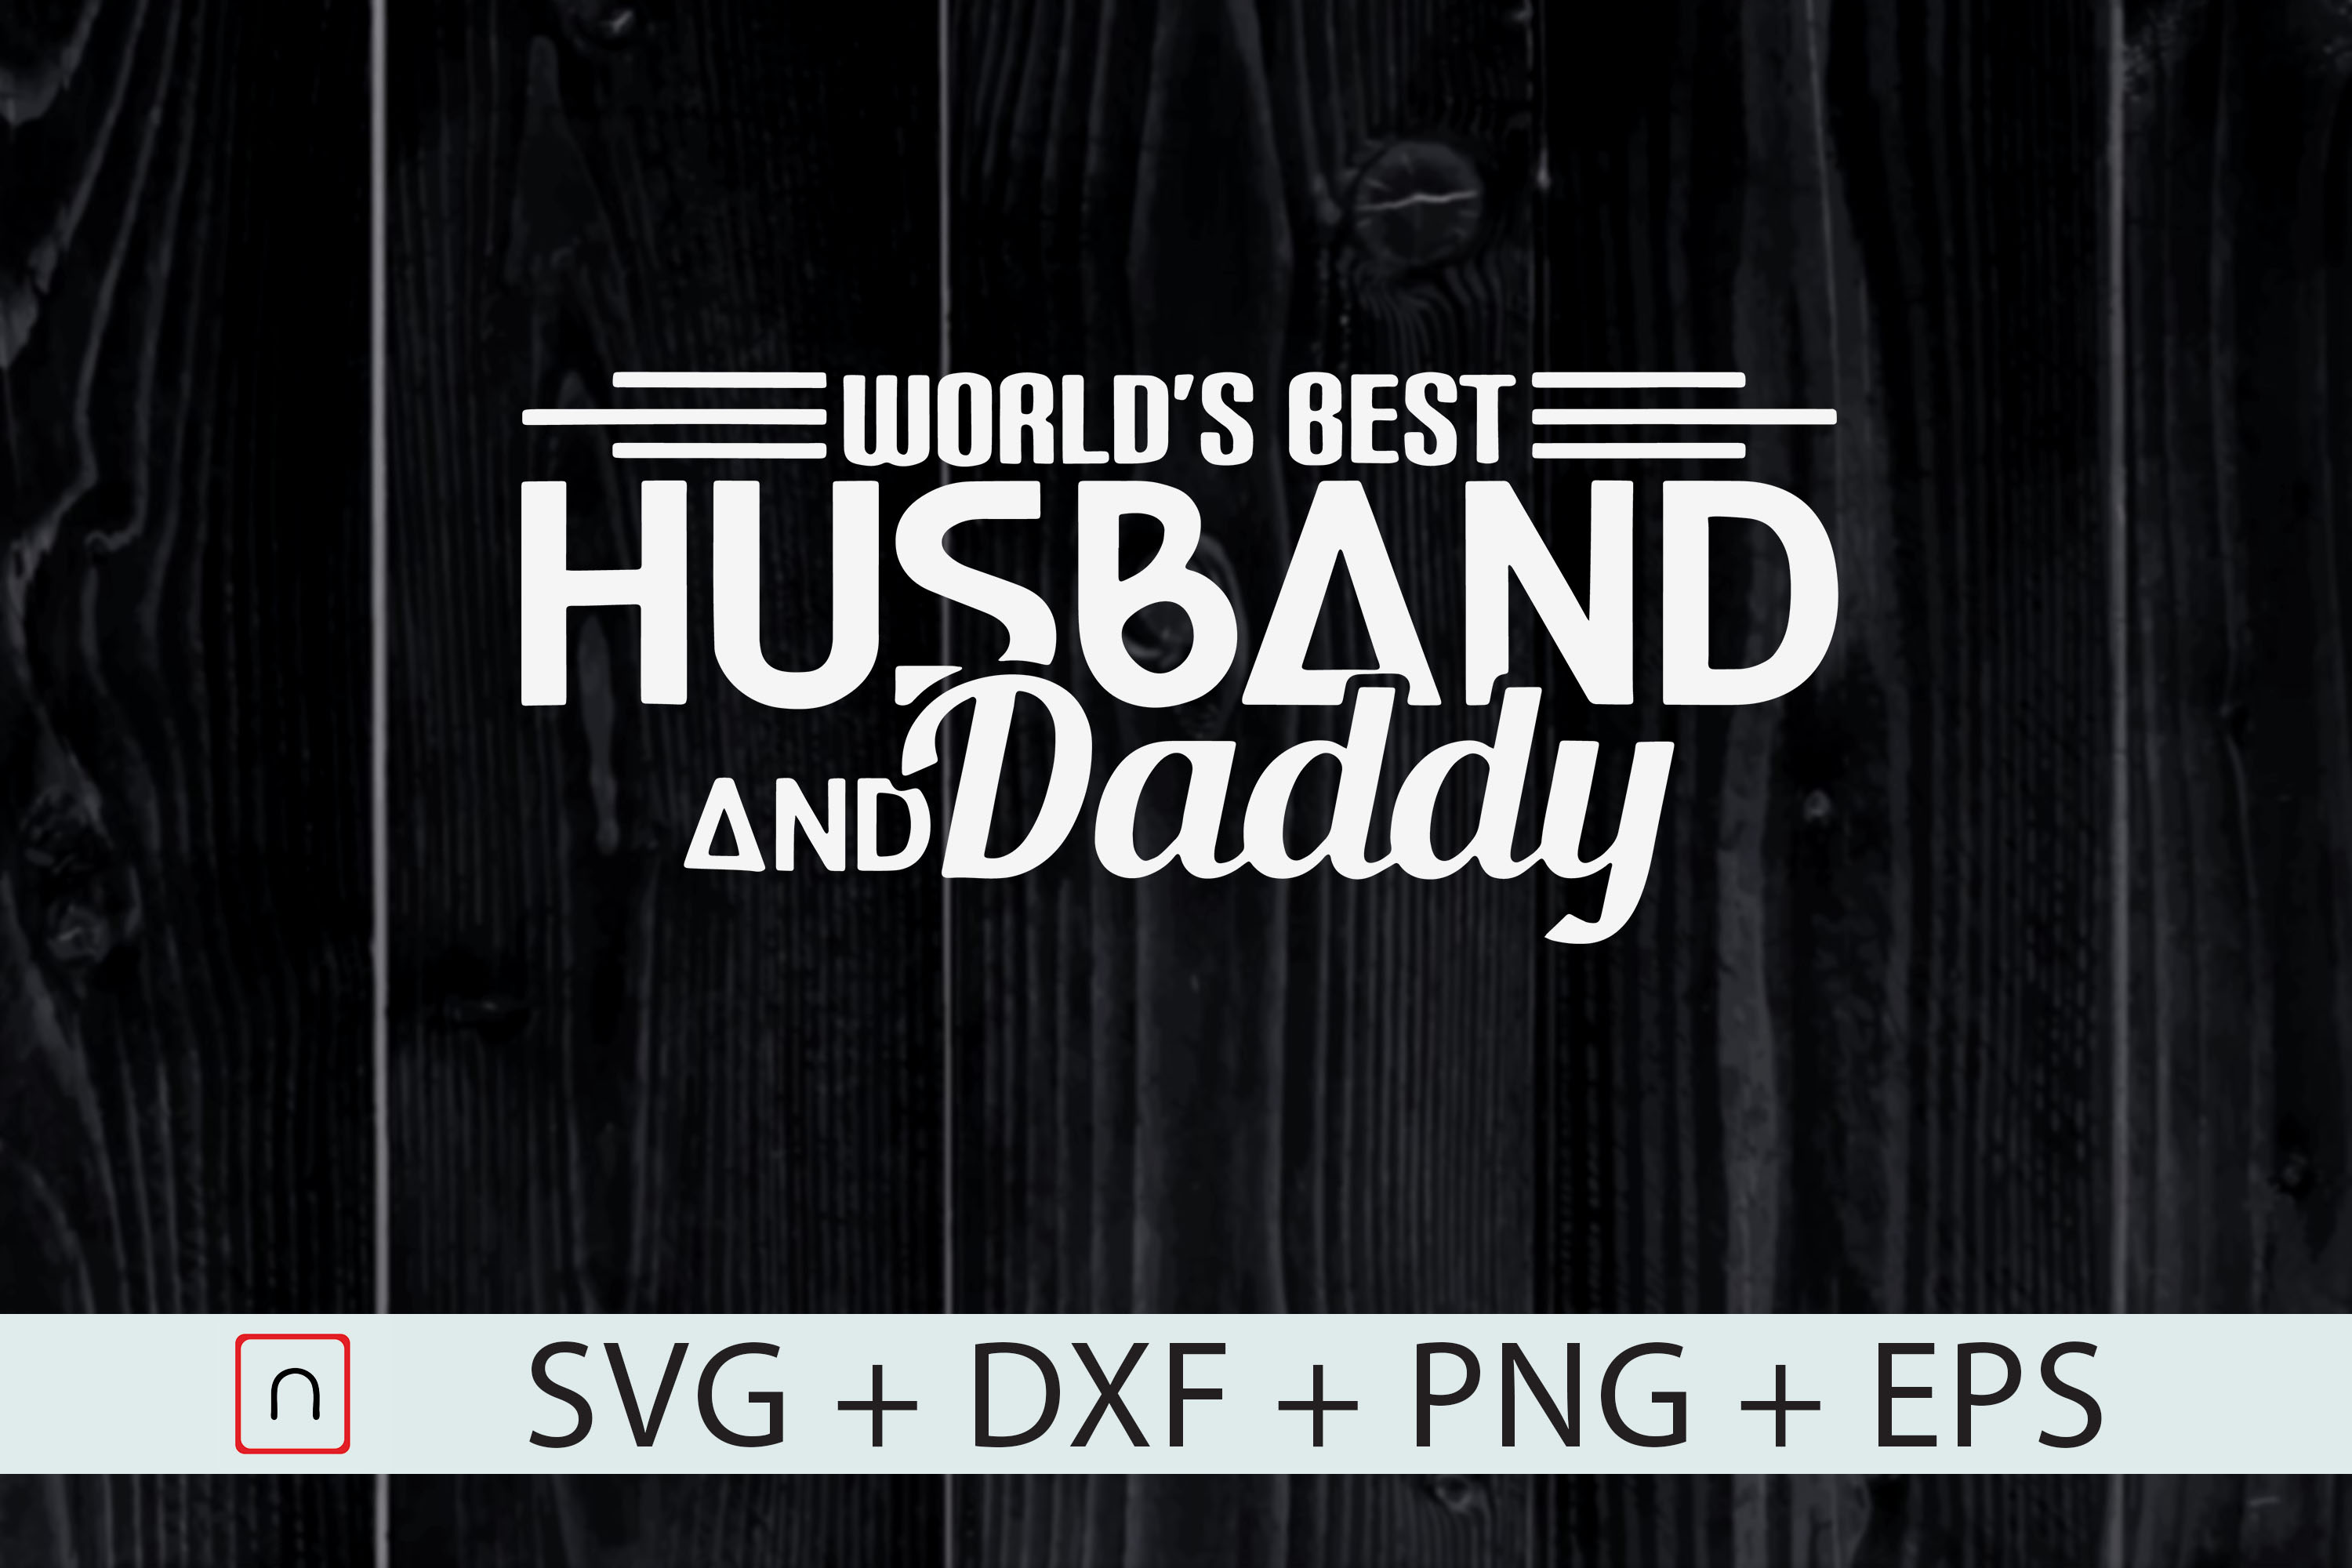 World S Best Husband And Daddy Graphic By Novalia Creative Fabrica